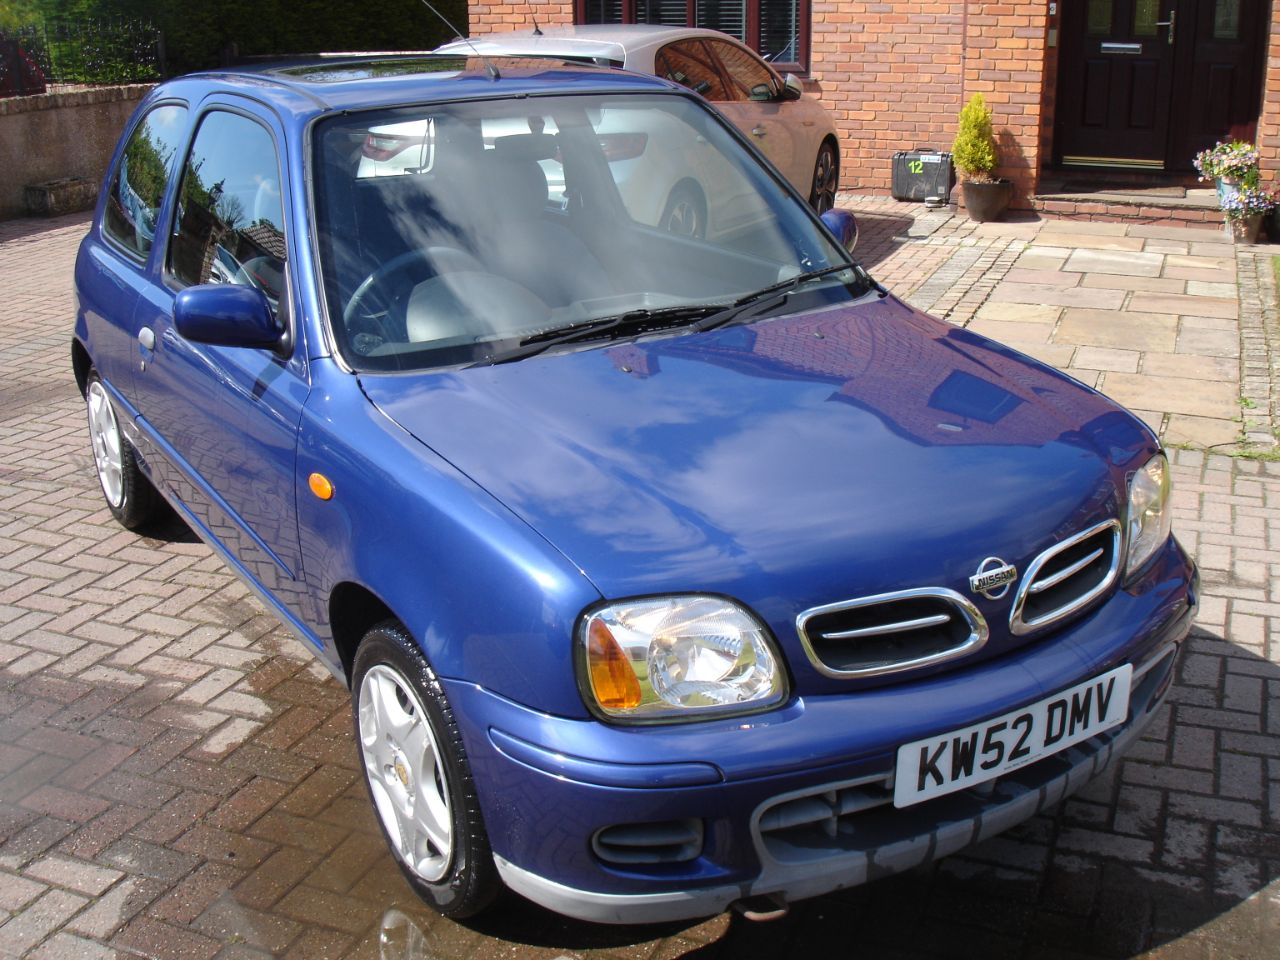 Nissan Micra 1.0 Tempest 3dr Hatchback Petrol Tempest Blue Metallic at Level Pitch Selby